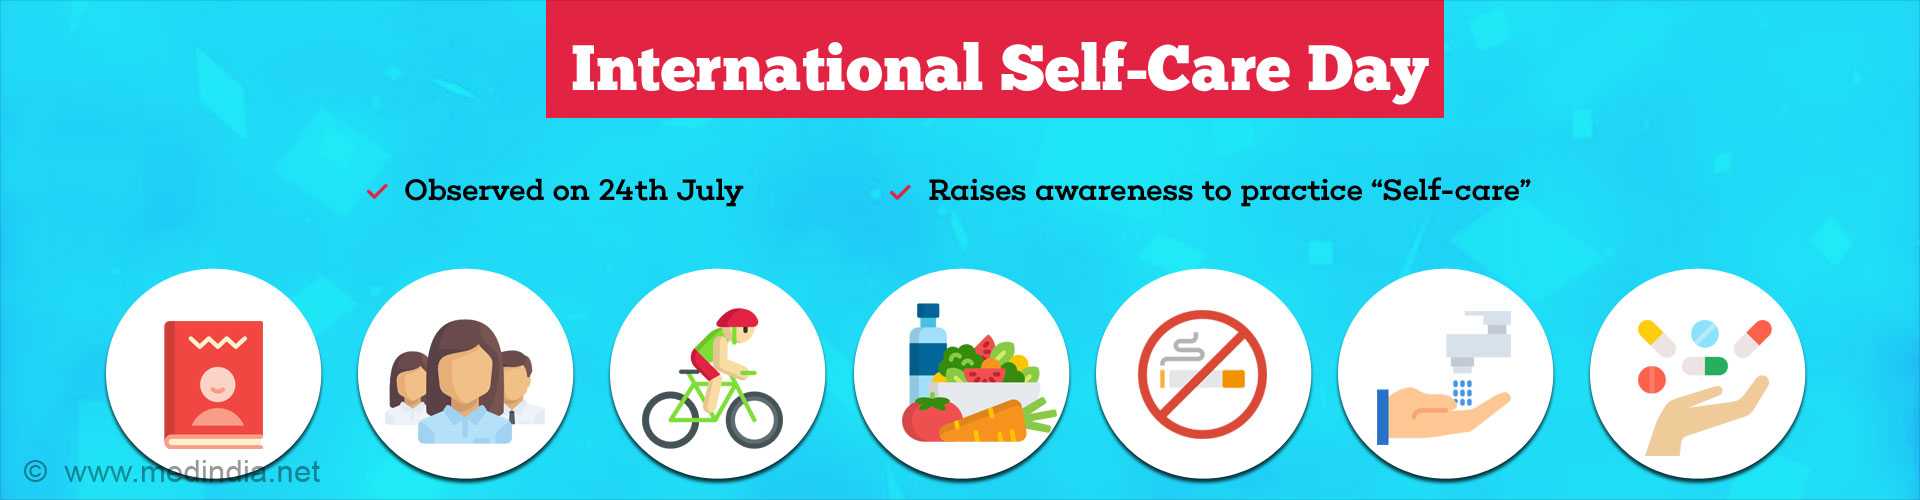 International Self-Care Day is 24 July - 'Feel Good, 7/24'